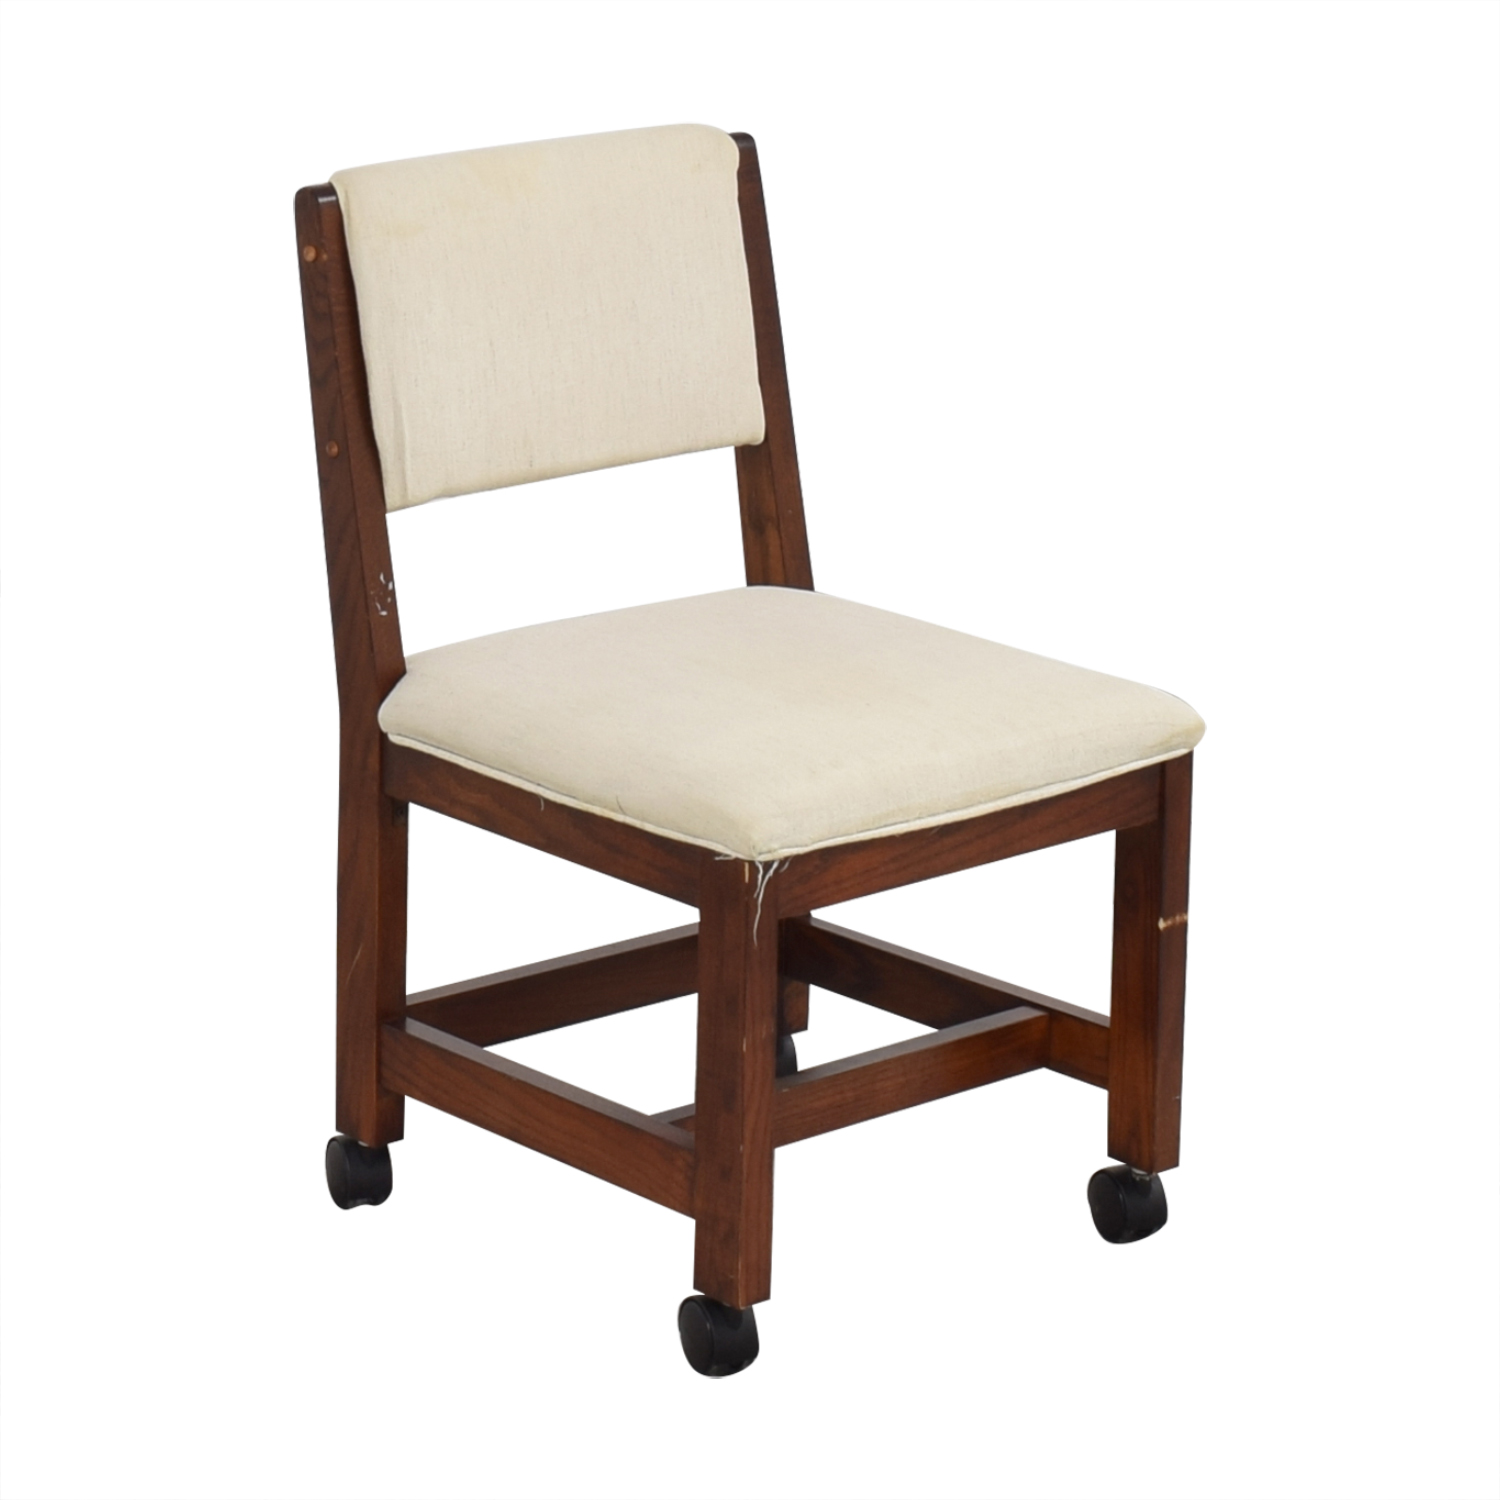 Thomasville Thomasville Rolling Office Chair ct